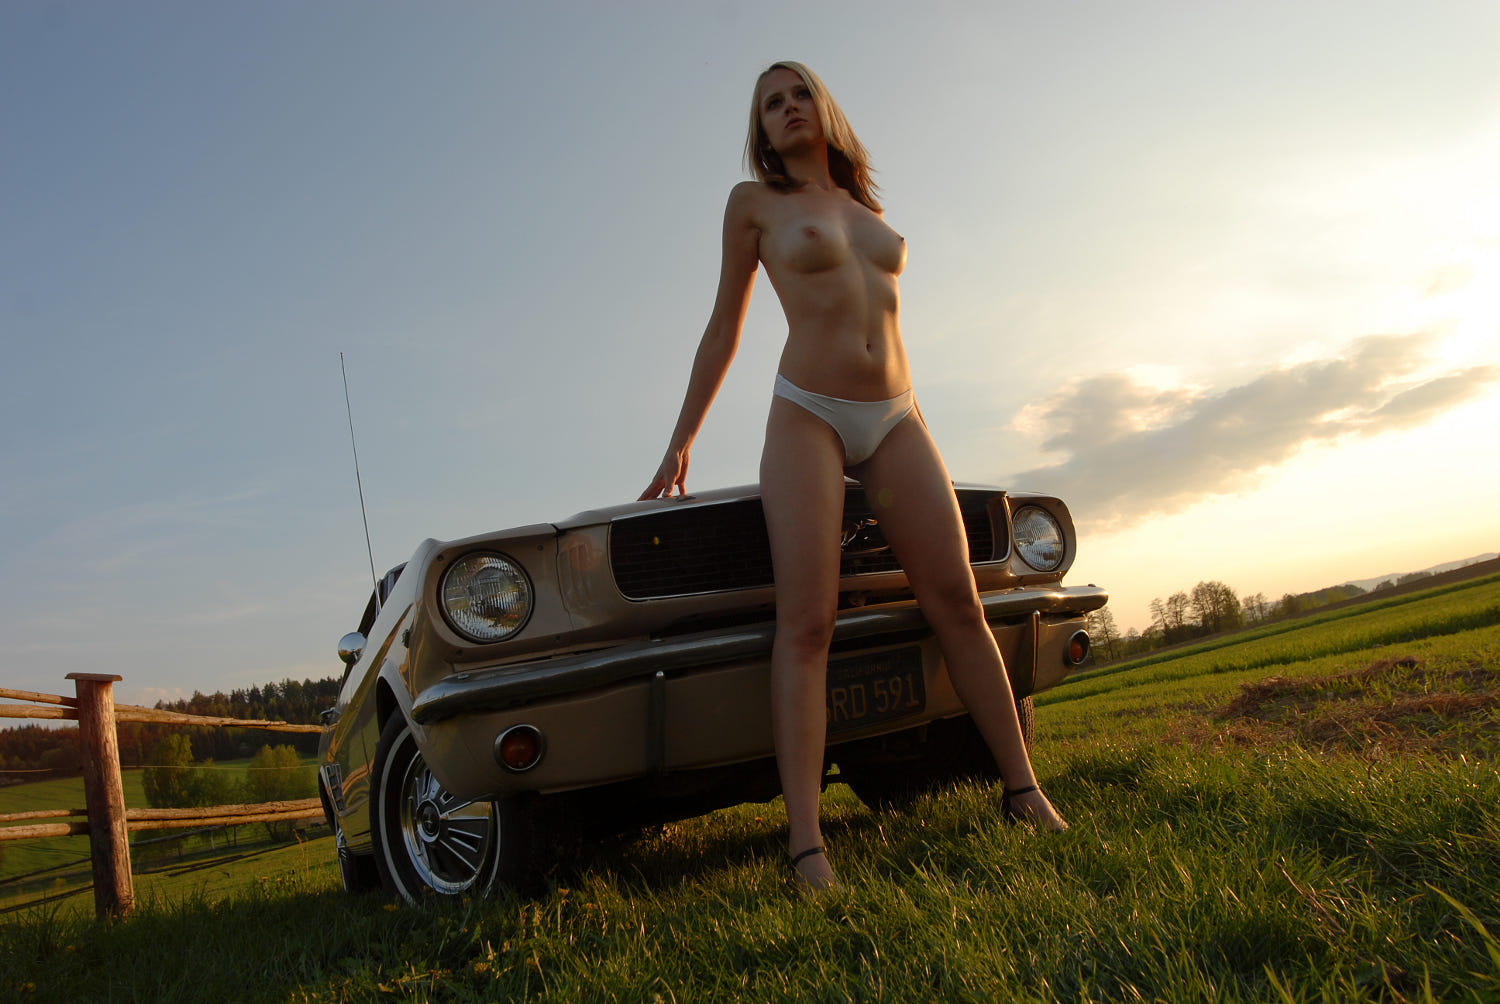 Nude Girls And Mustangs